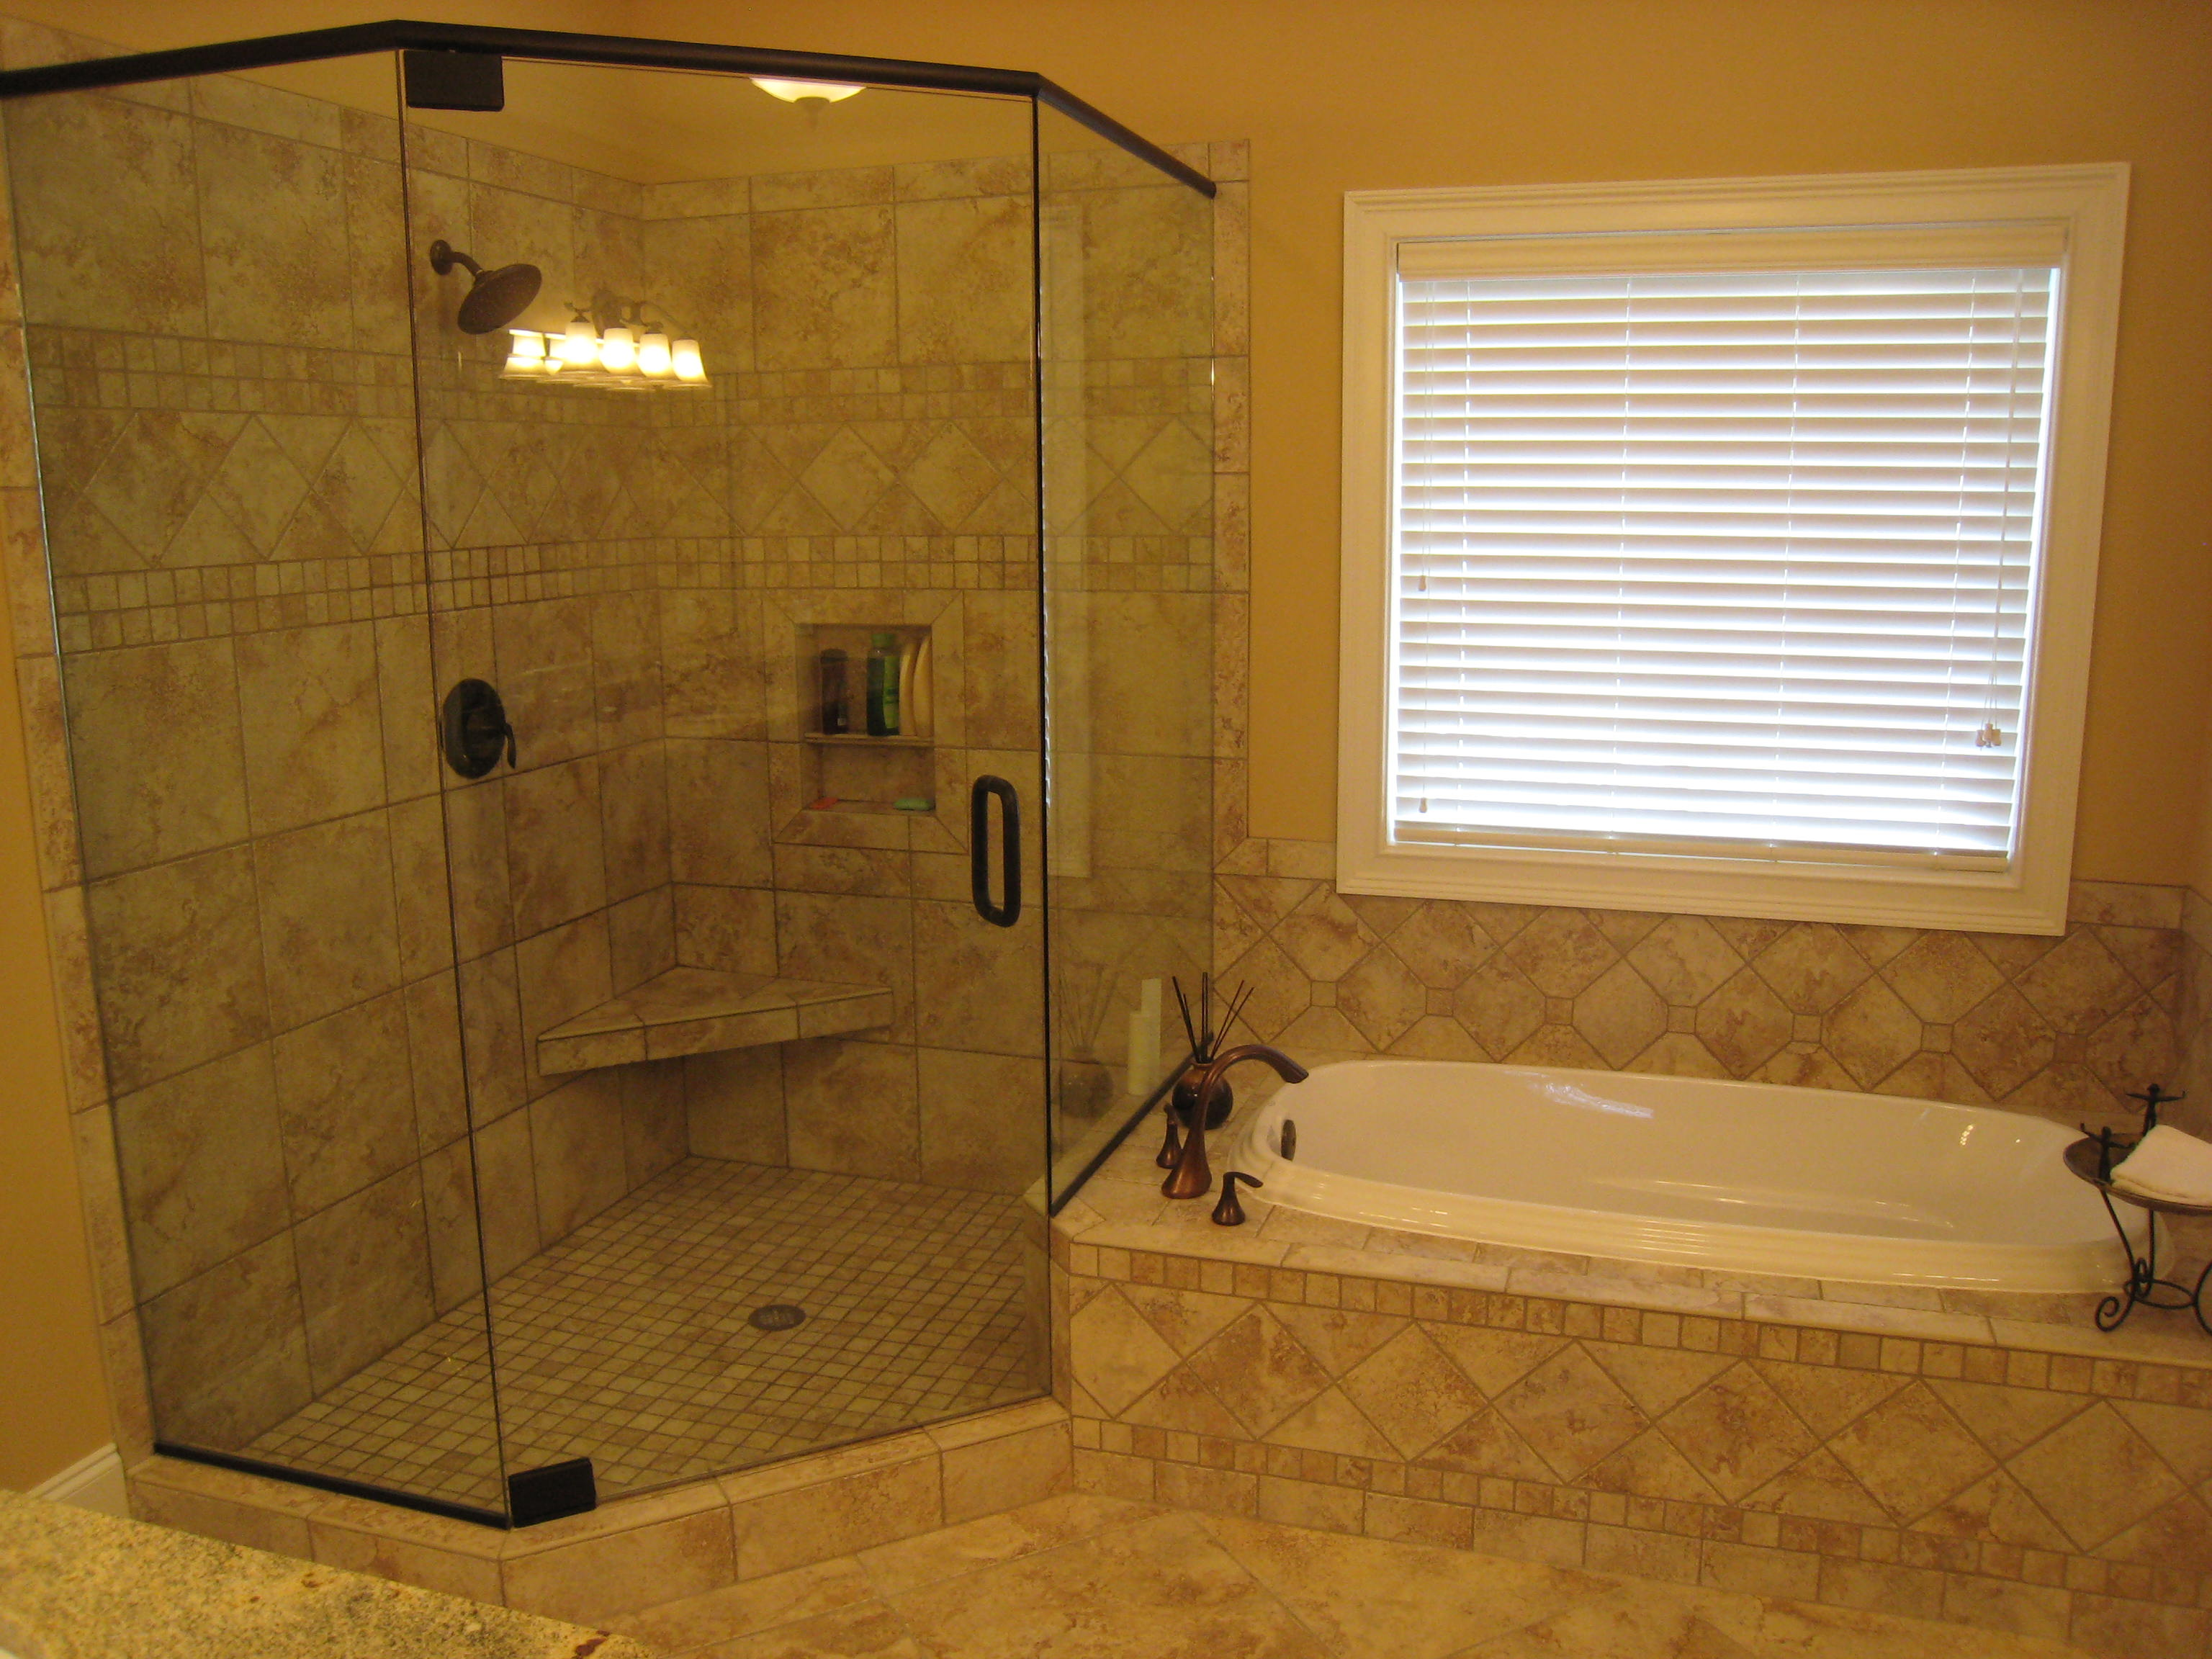 Images Of Tips For Remodeling A Master Bathroom Decoration  Shower And Bath Tub 010